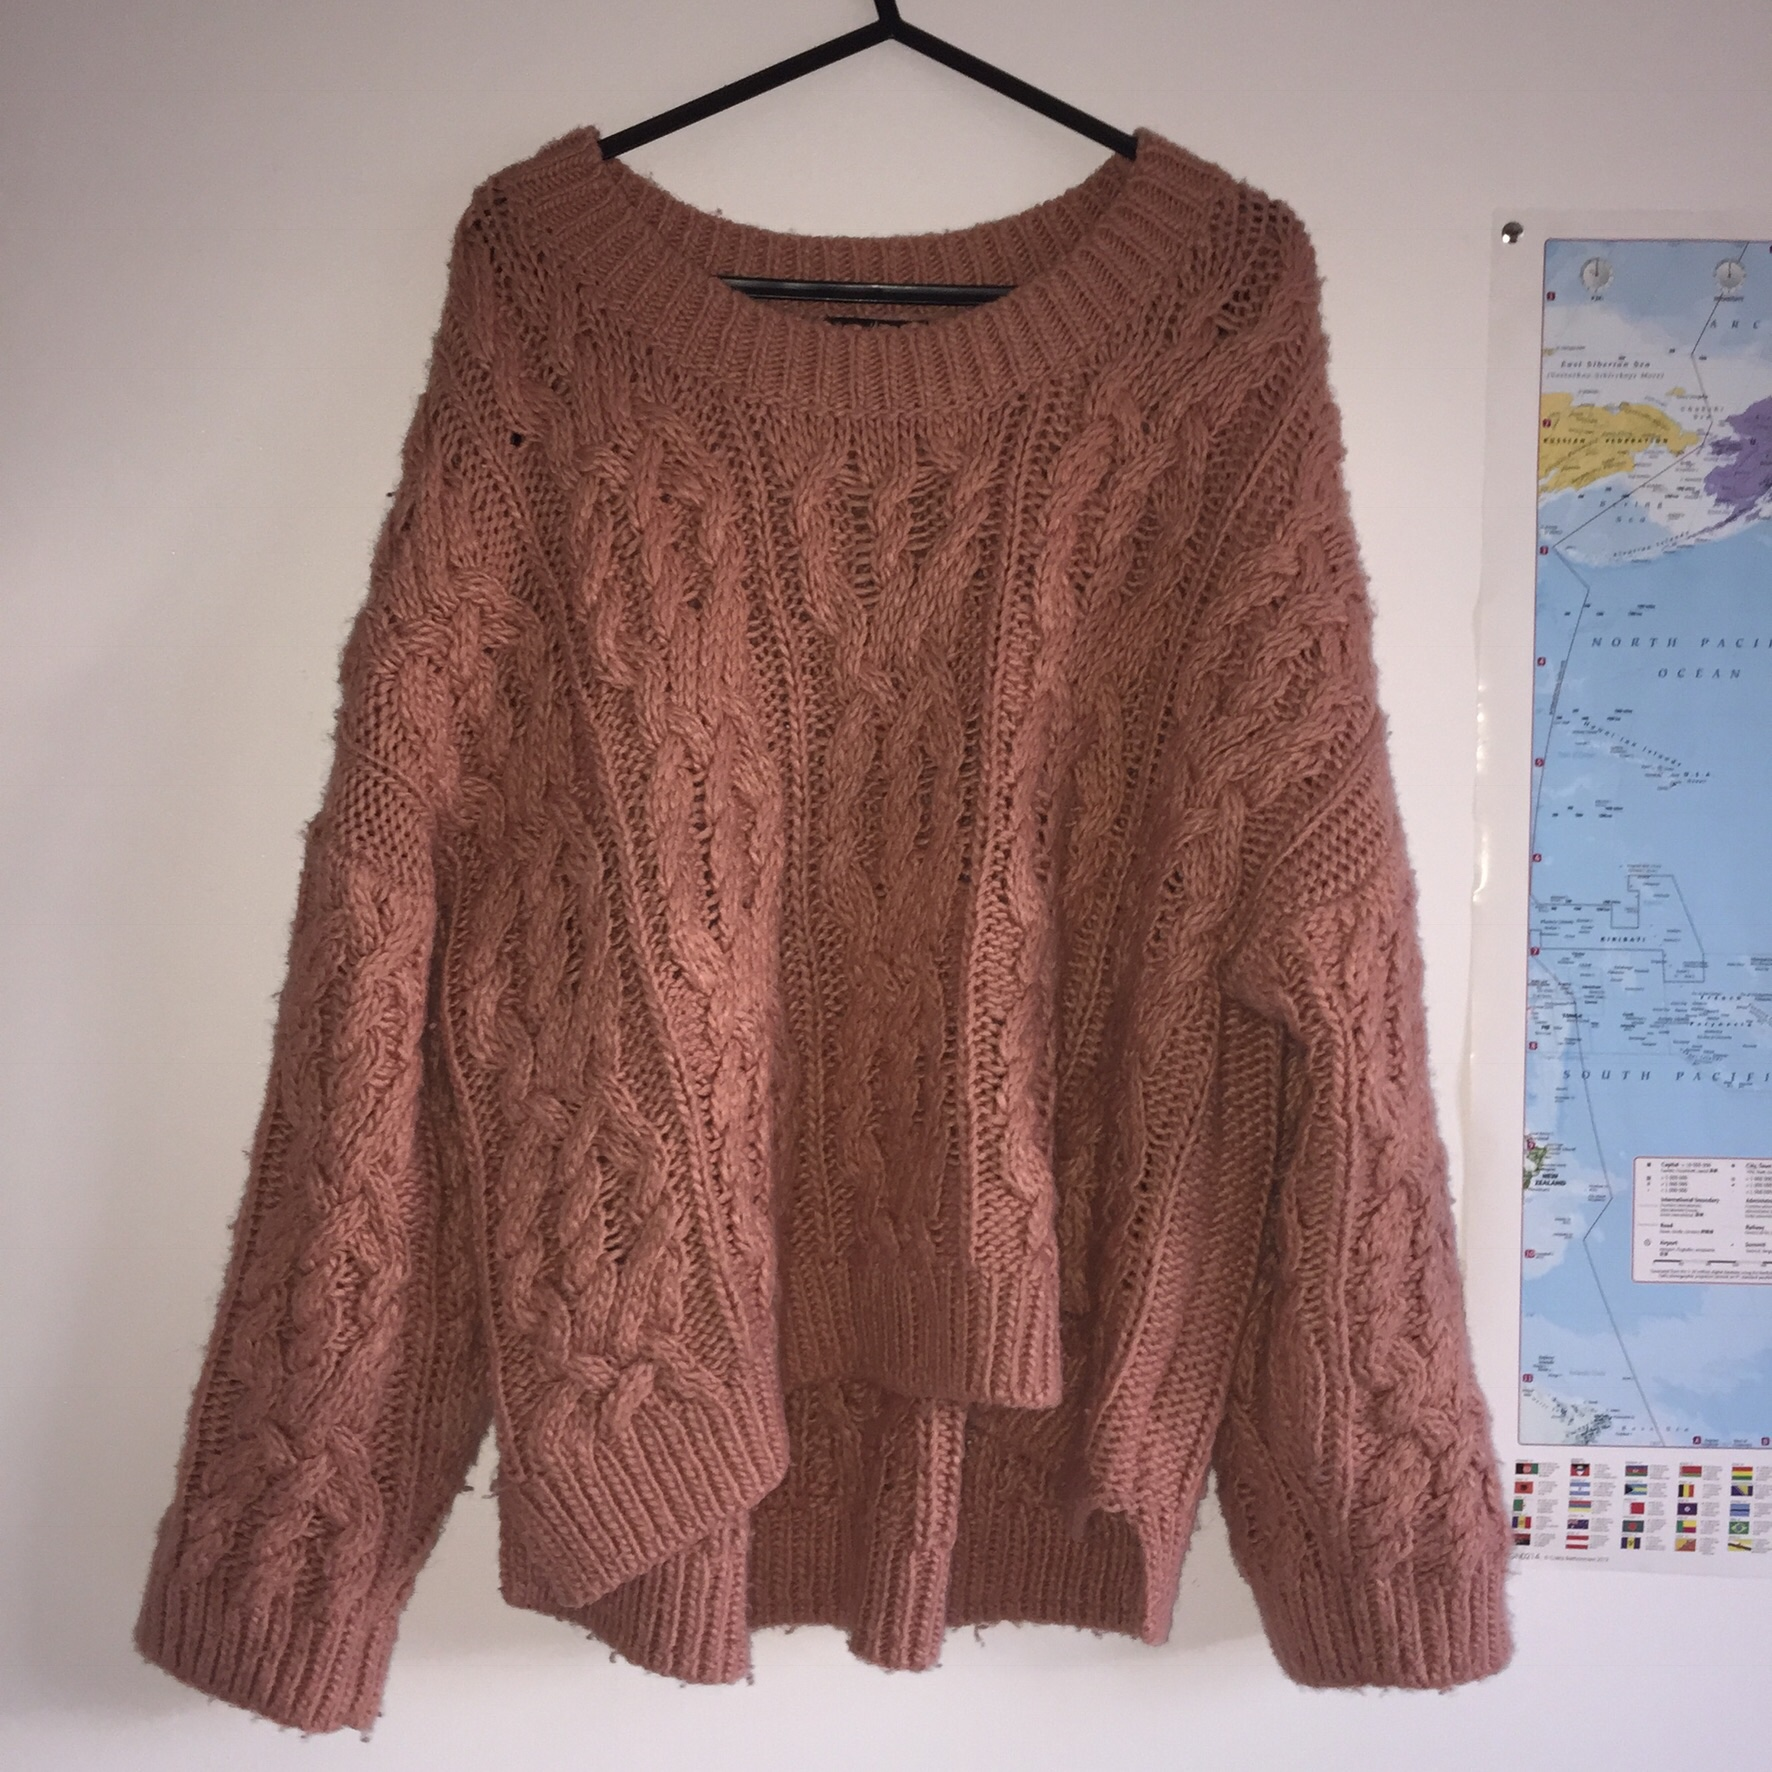 H&m chunky knit dusty pink chunky jumper, perfect Depop